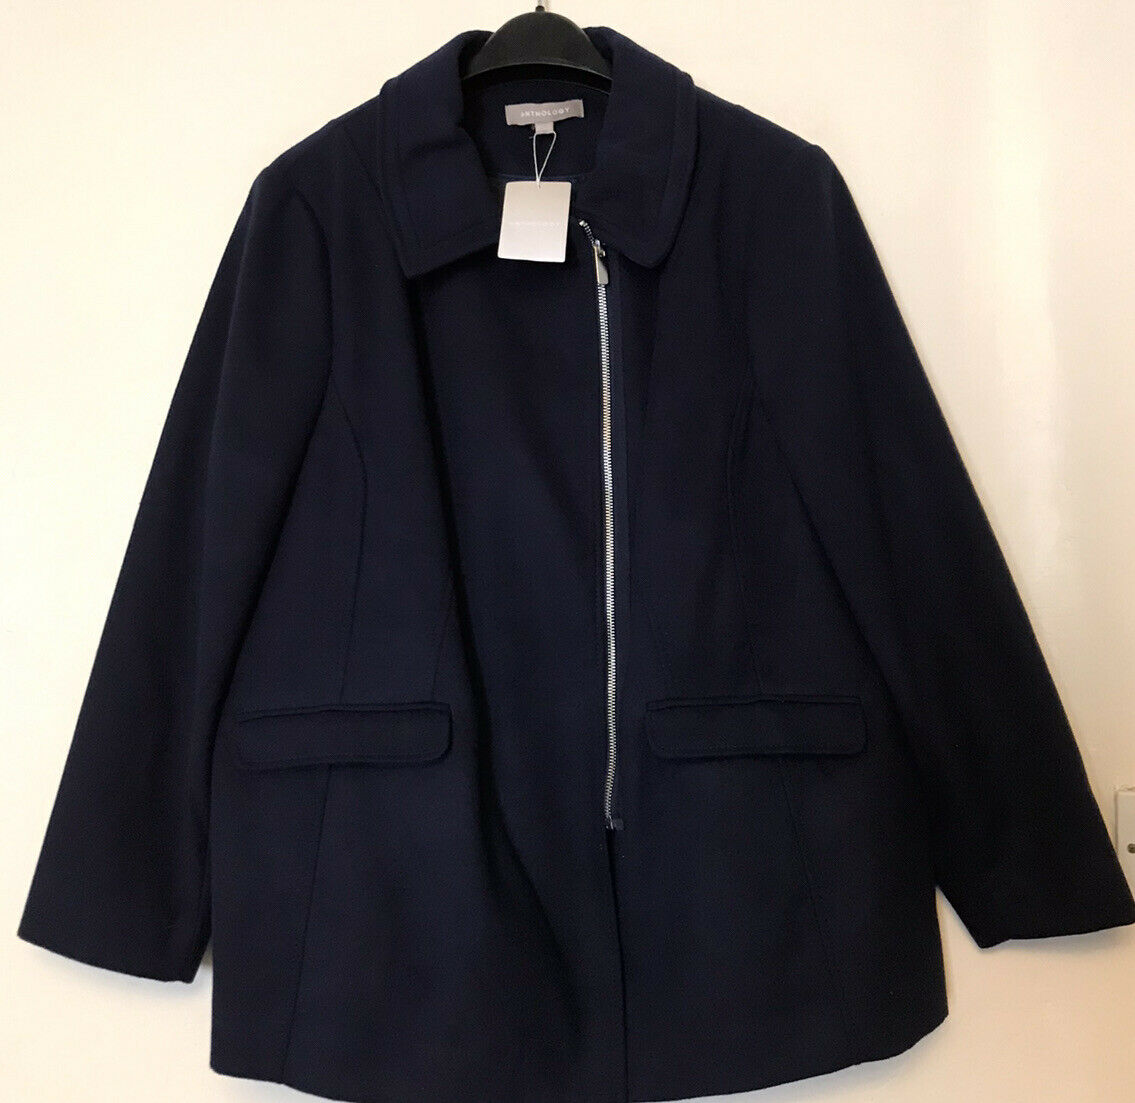 Womens Jacket From Anthology Size 20 New With Tag